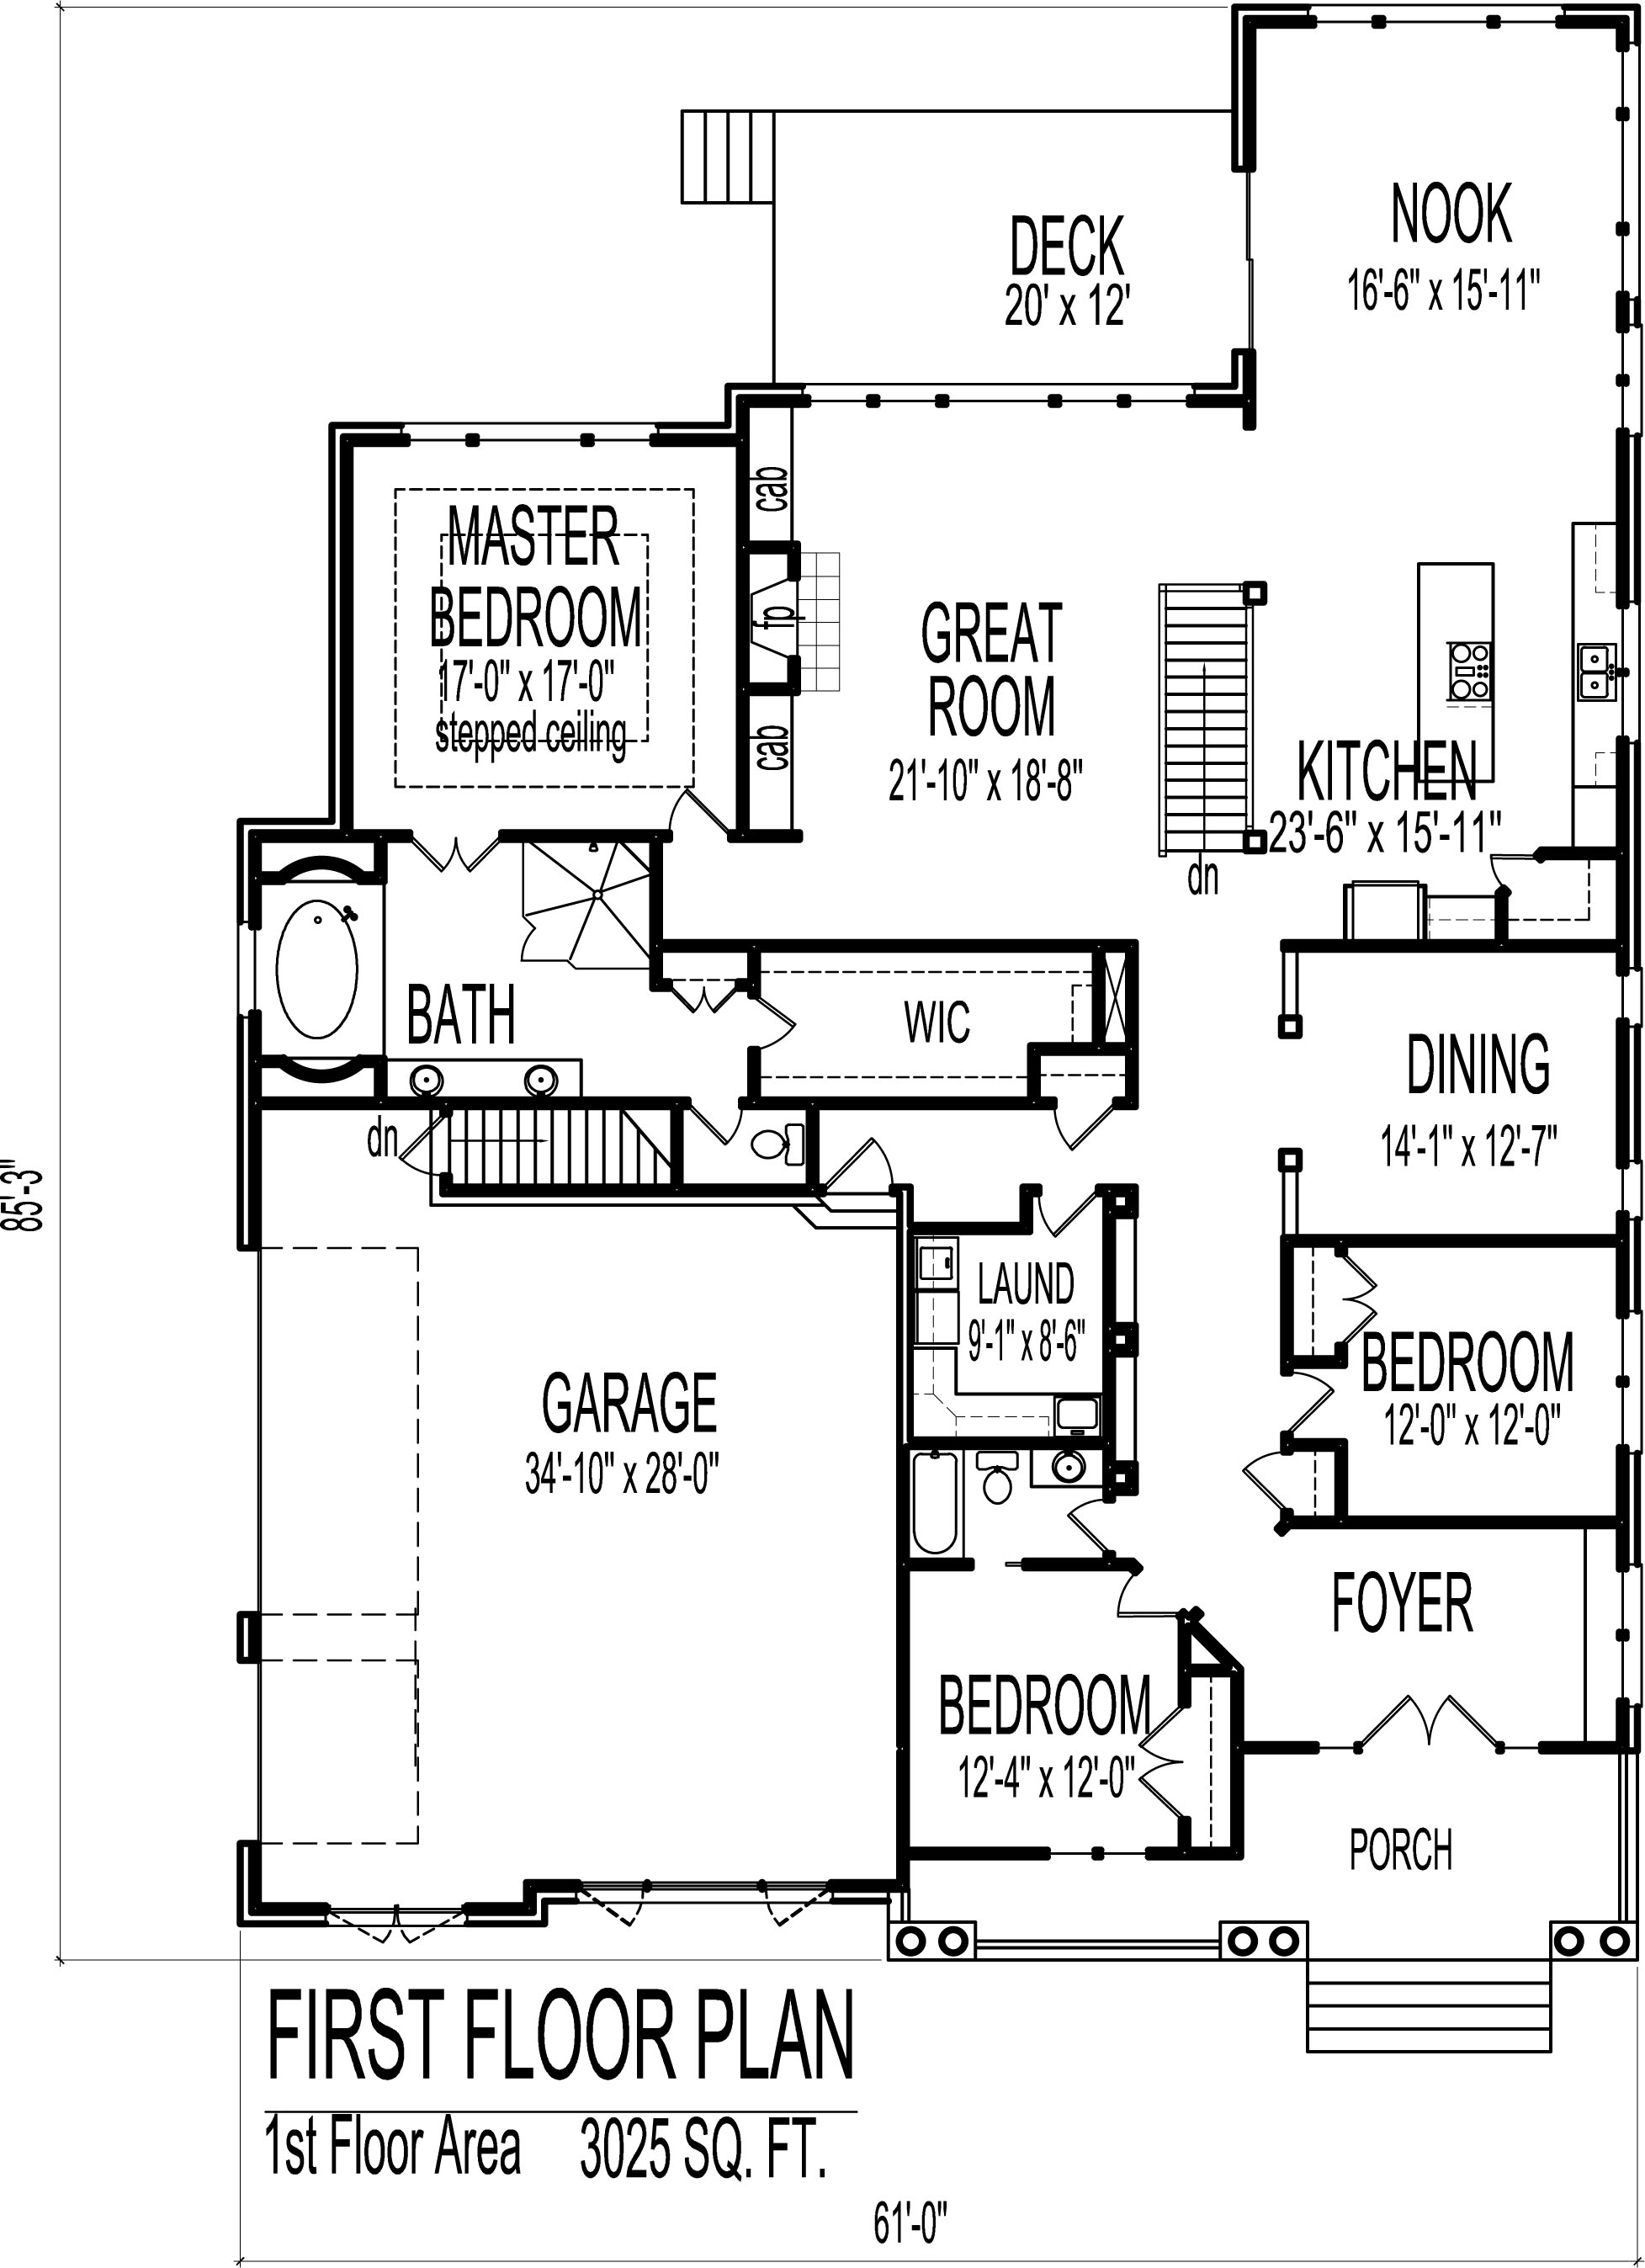 House Site Plan Drawing At Getdrawingscom Free For